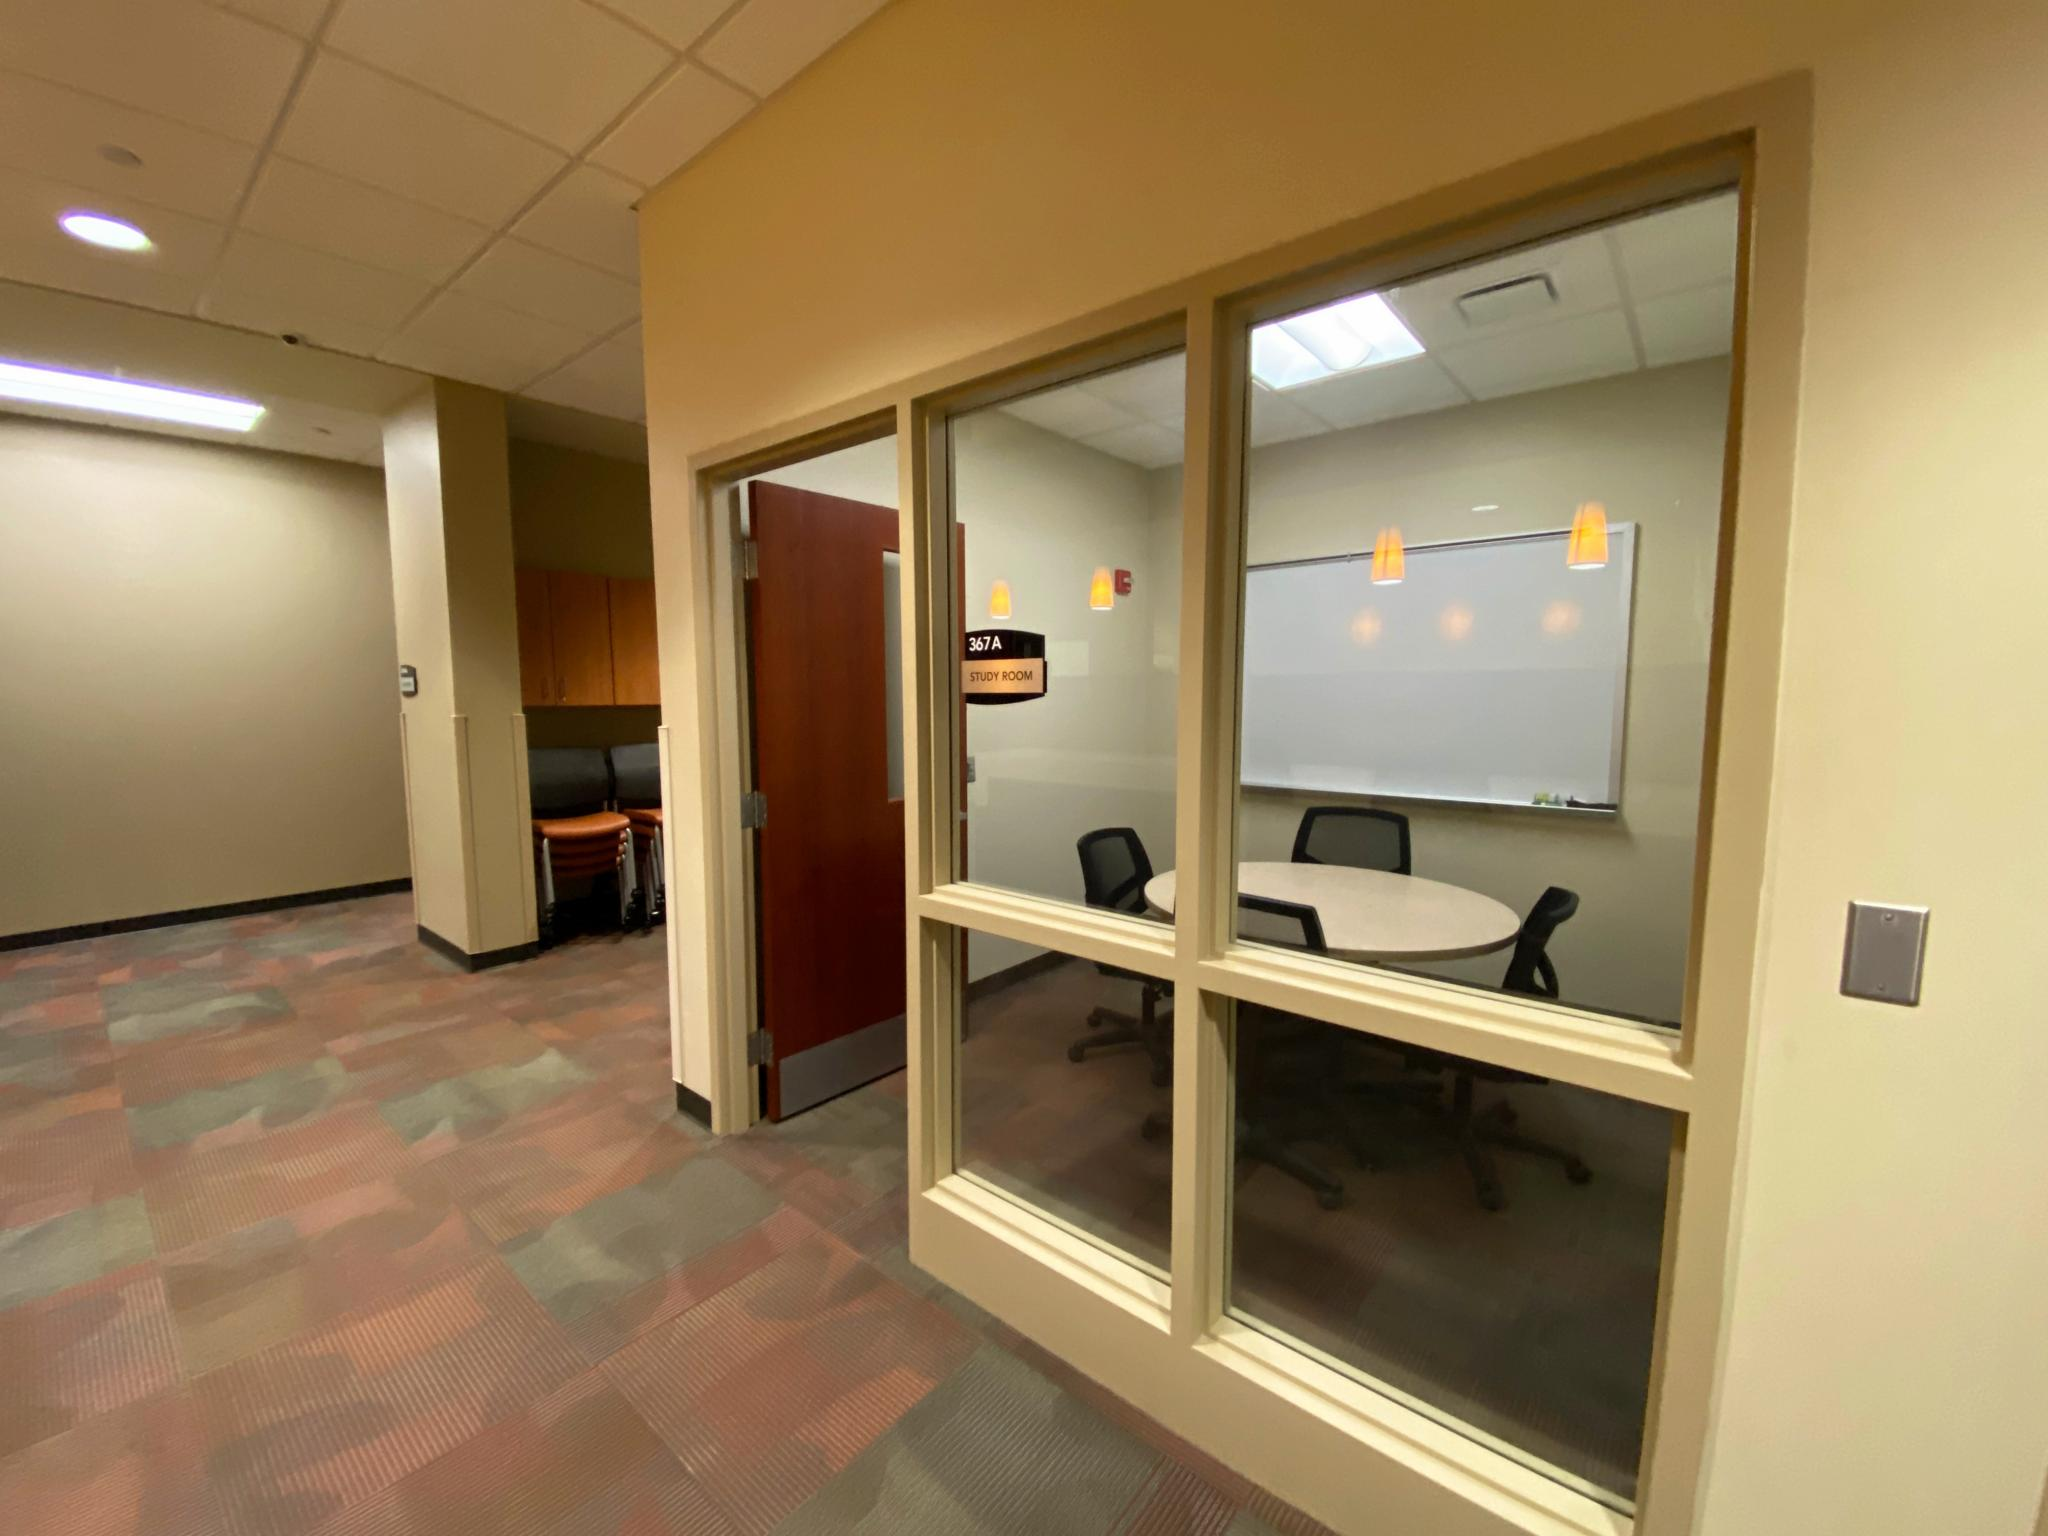 photo of collaboration room with windows